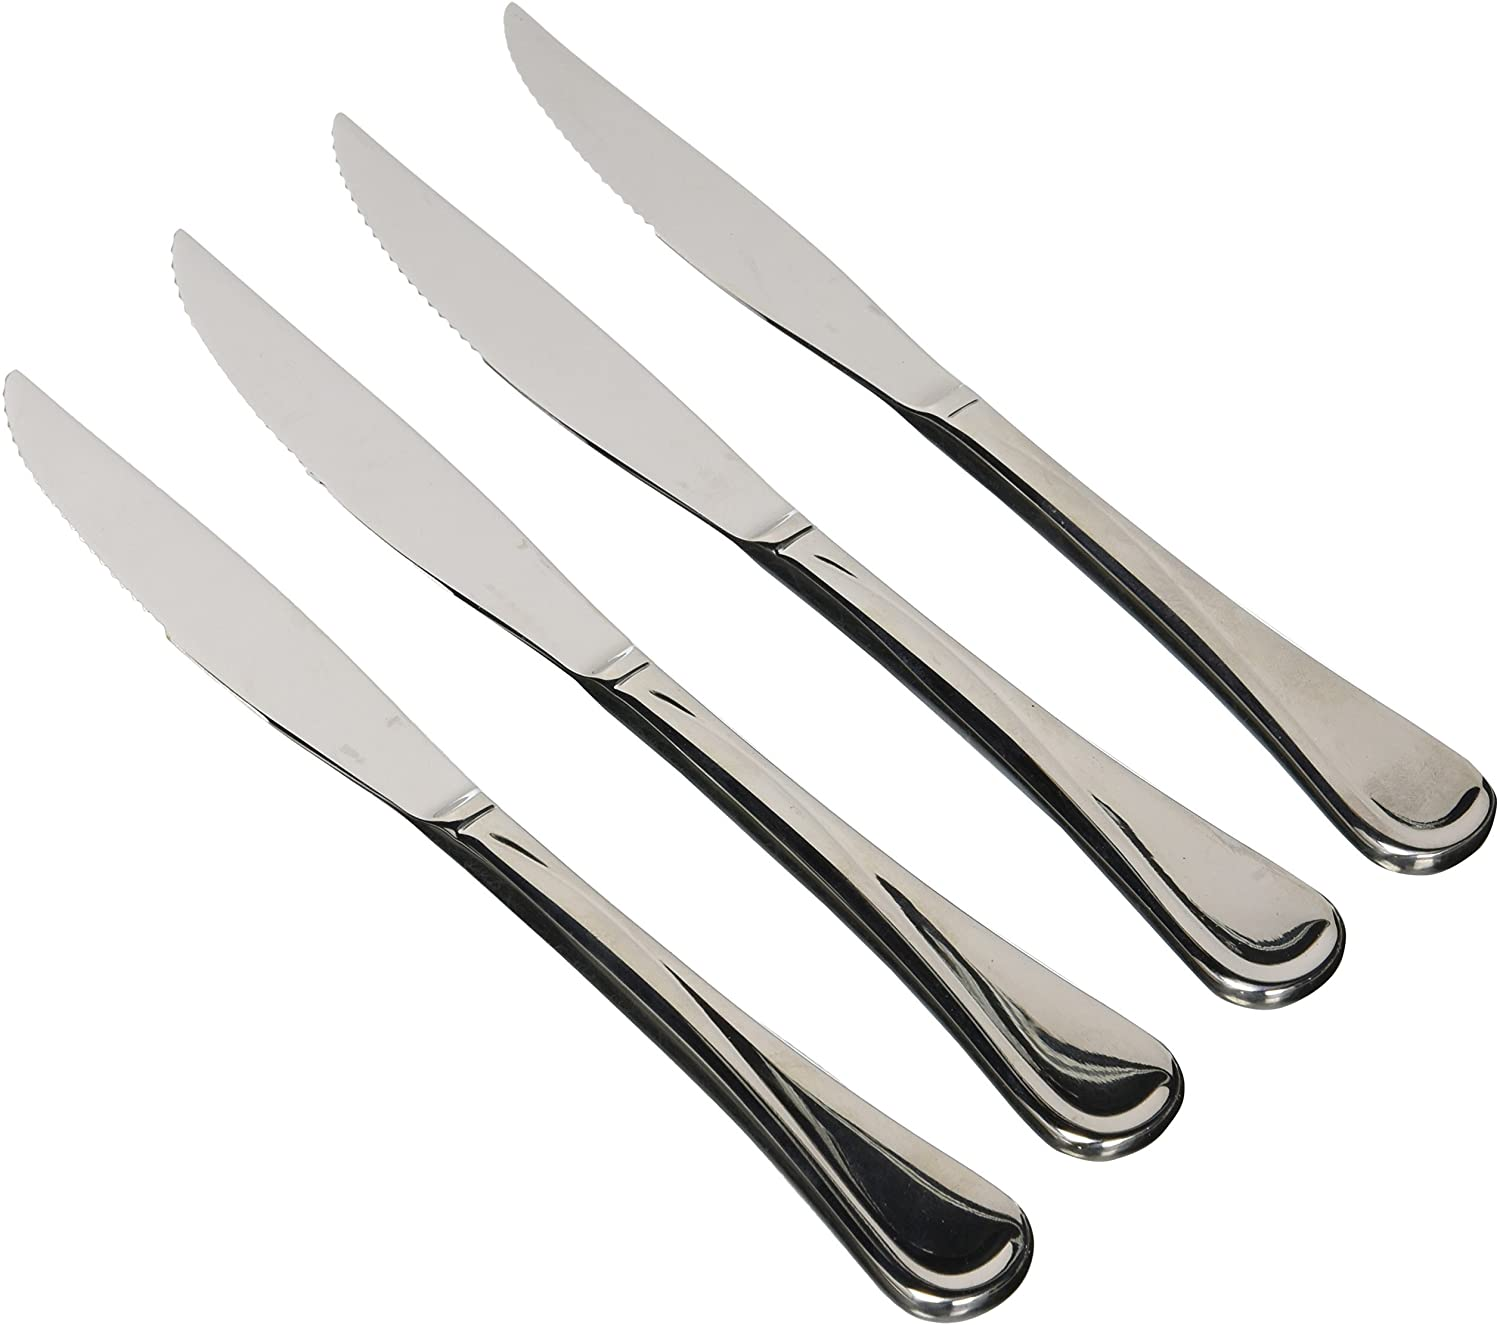 Generic 6pcs High Quality Stainless Steel Table Butter Knives / Knife Set (+ Free Gift Hand Towel) Stainless Steel